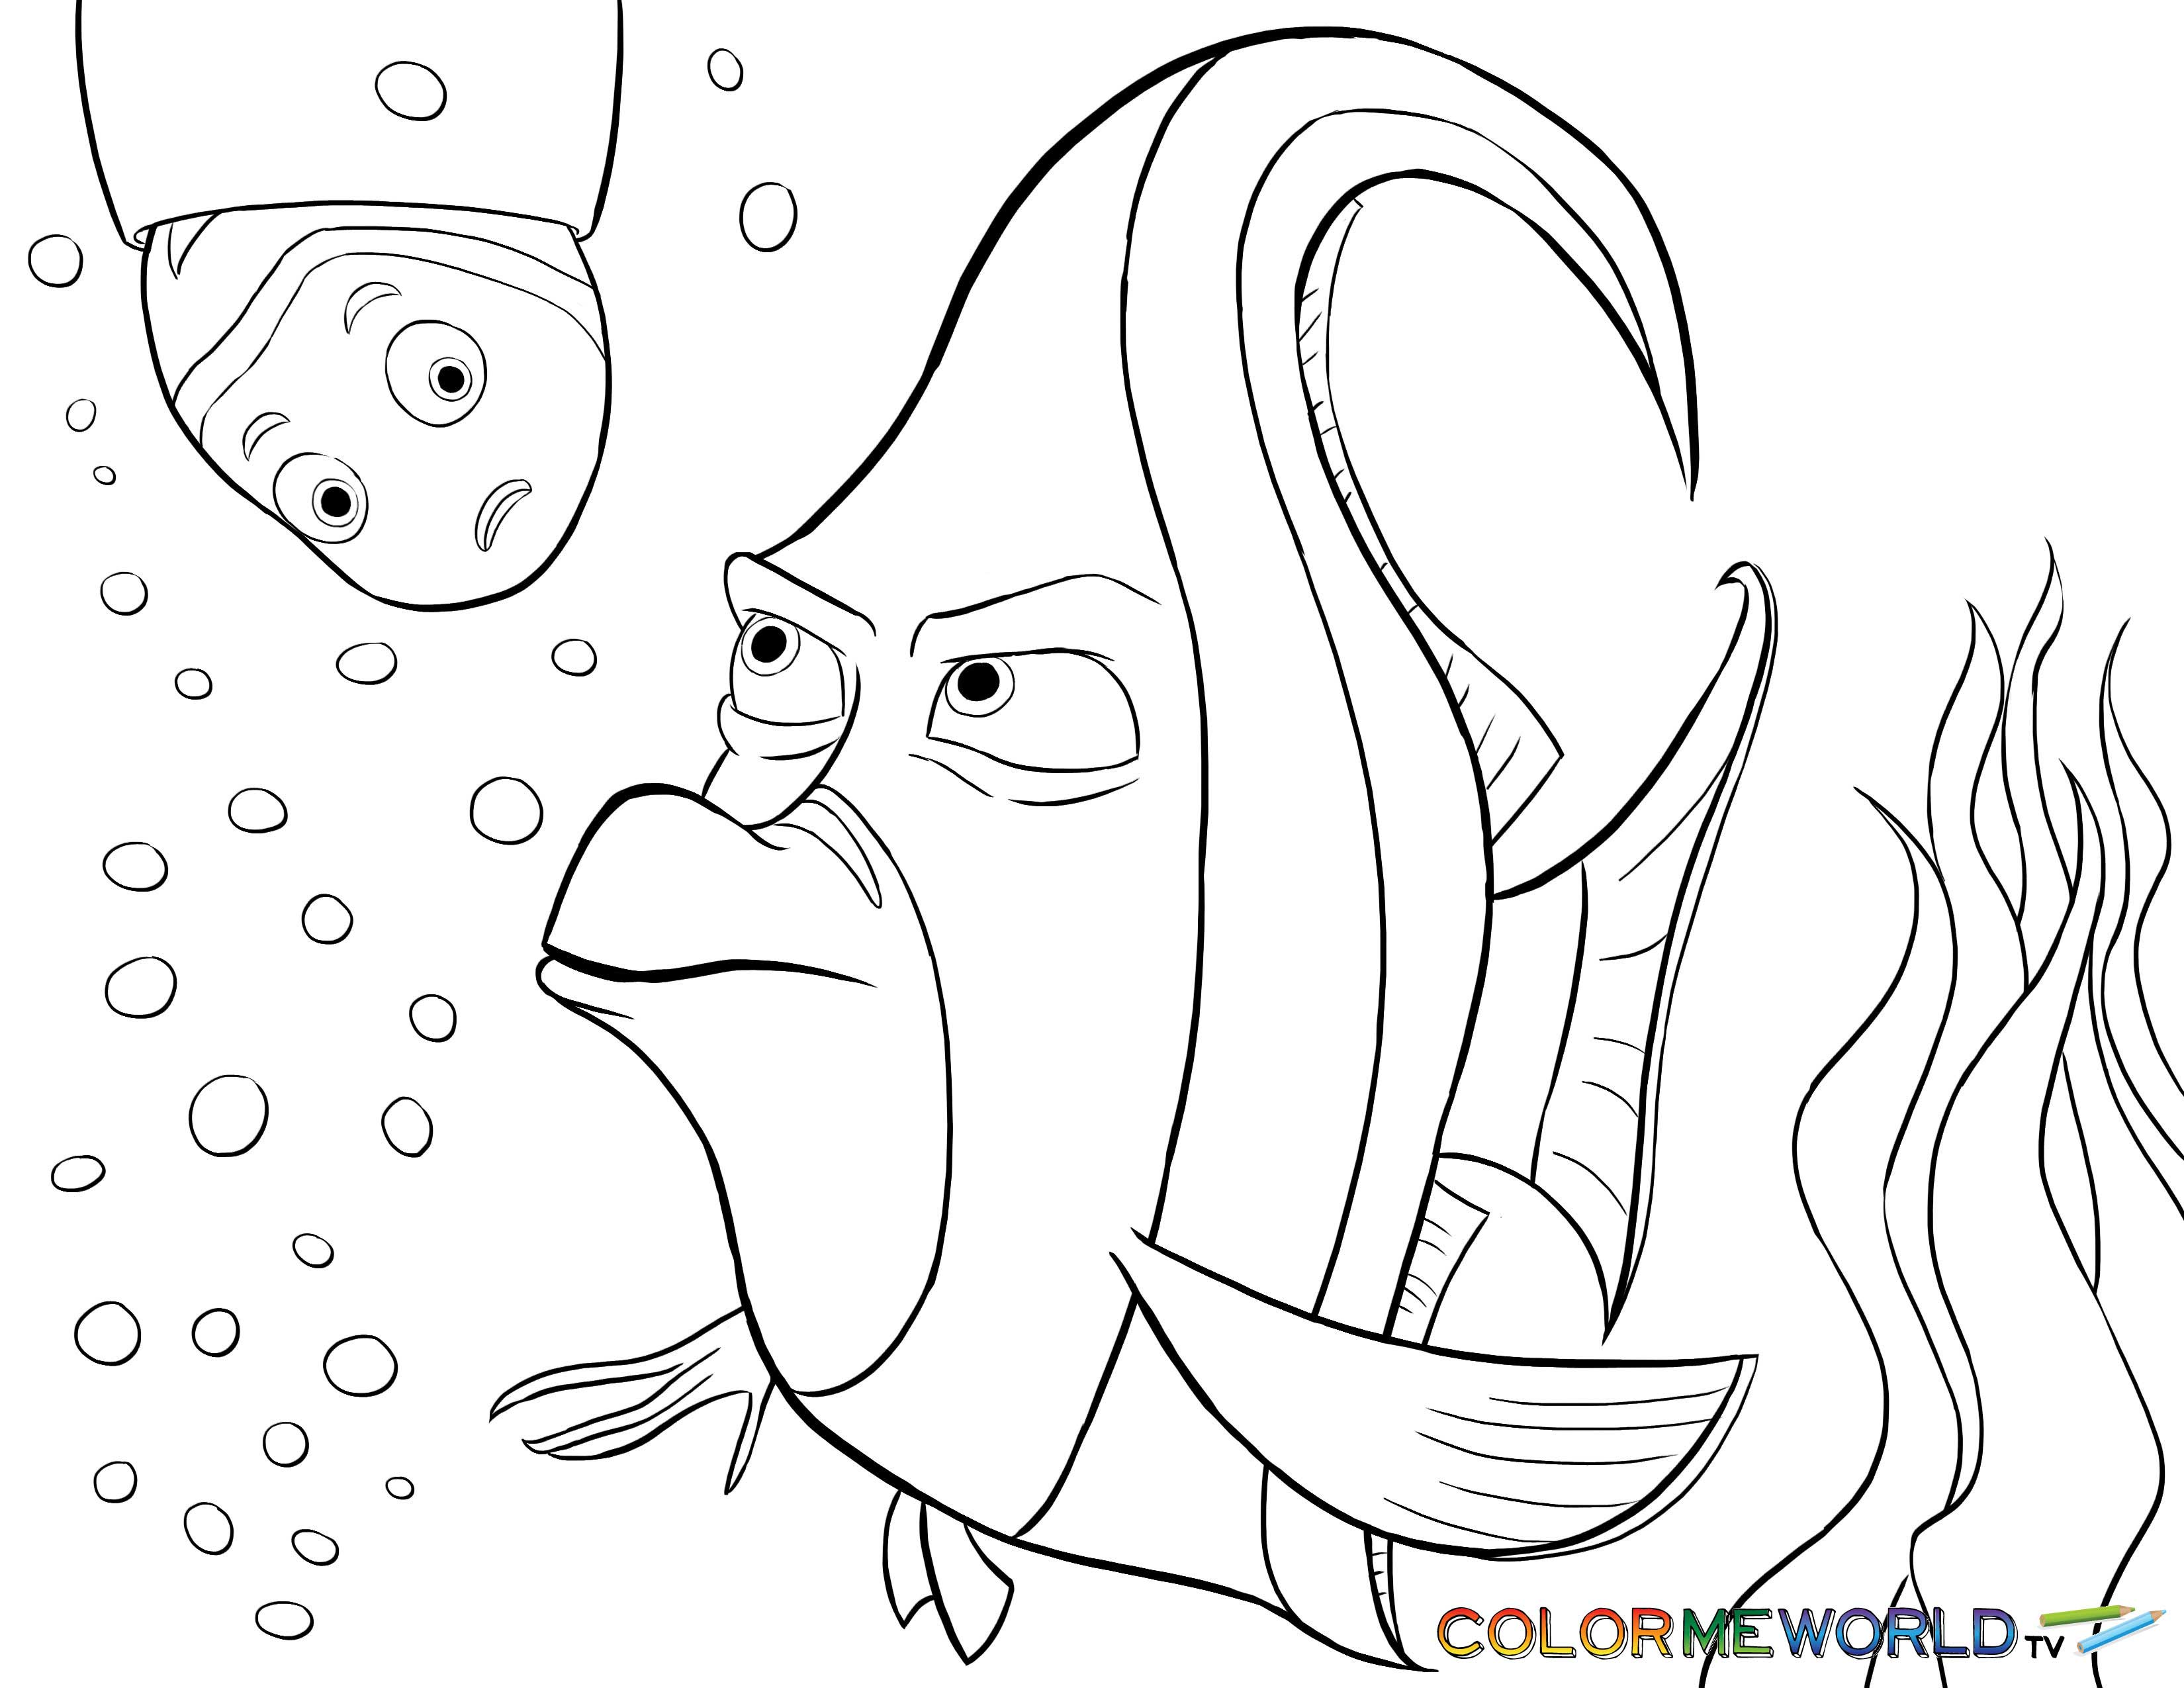 3300x2550 Finding Nemo Turtle Coloring Pages Page Image Clipart Images